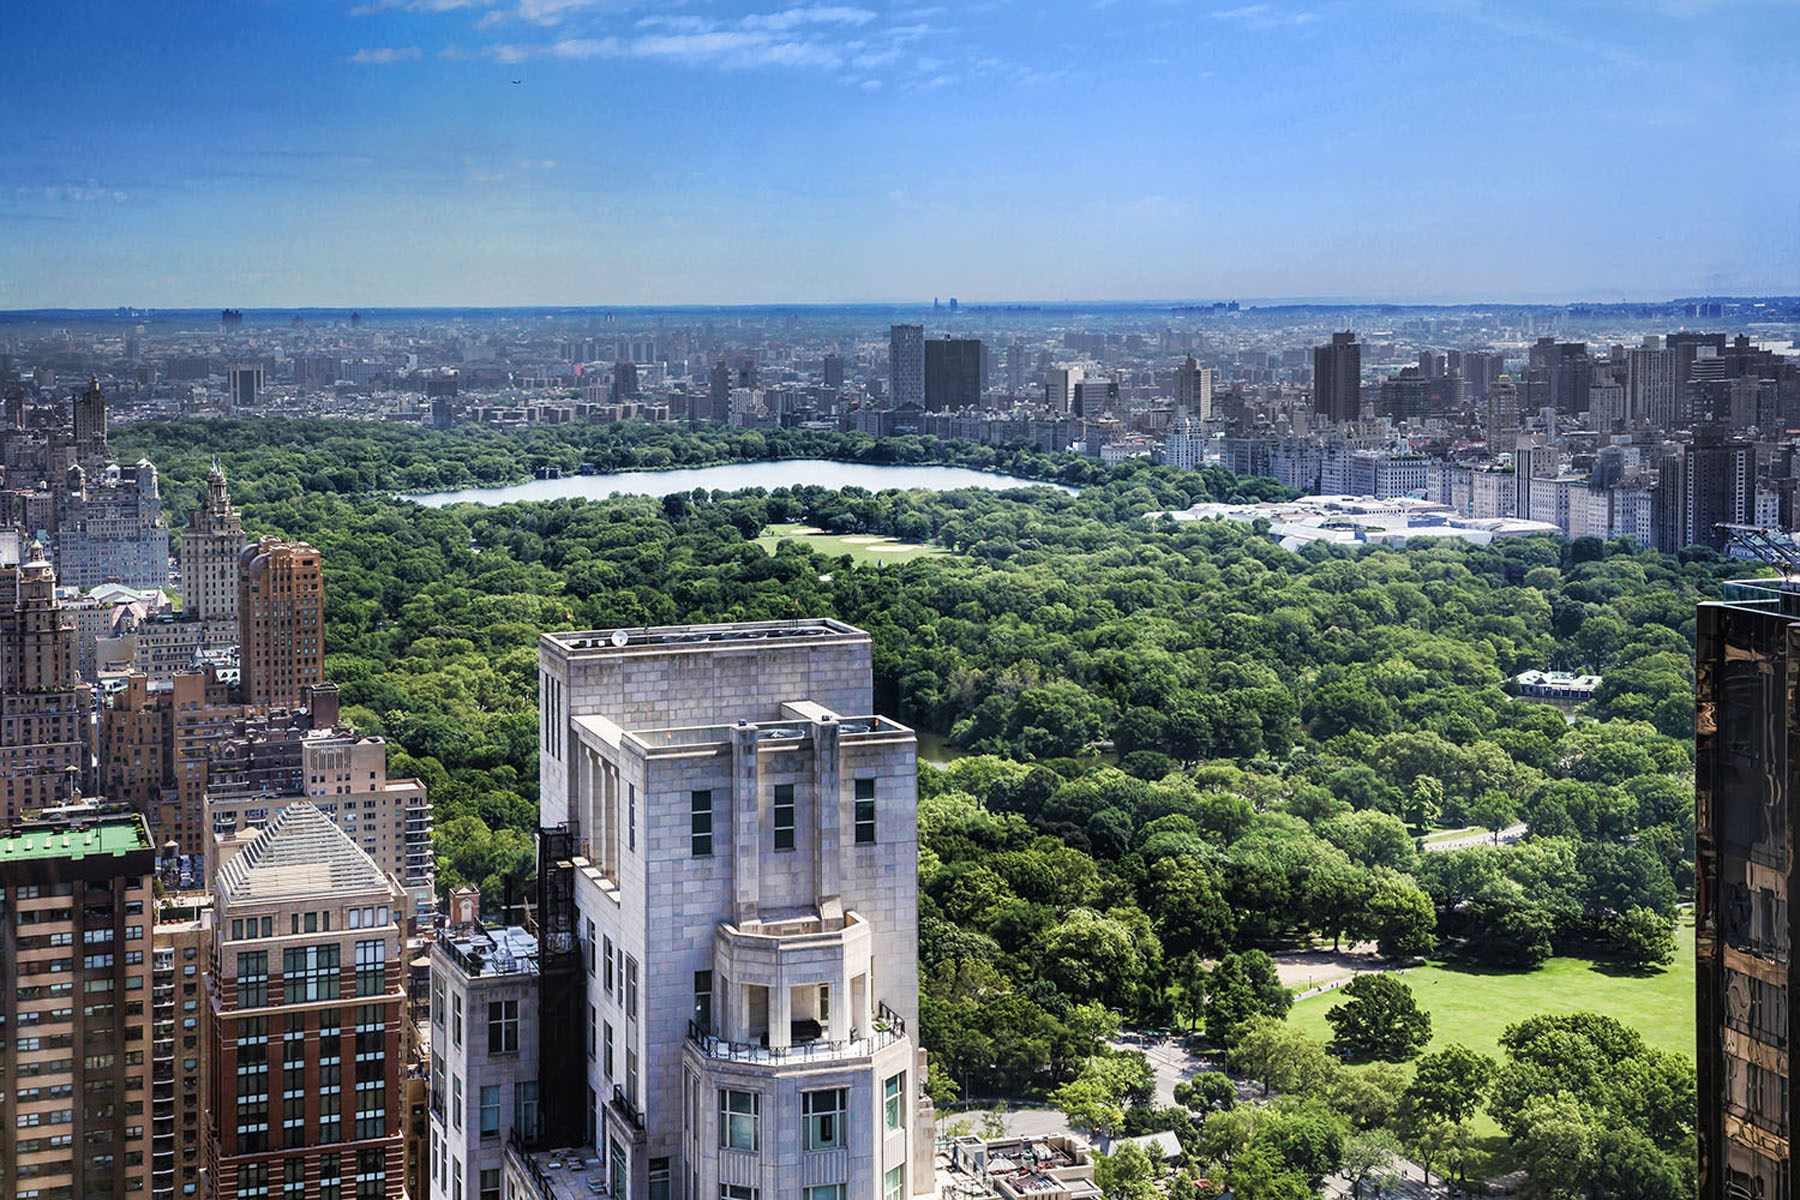 Кондоминиум для того Продажа на Residences at Mandarin Oriental, 75C/75E 80 Columbus Circle Apt 75C/75E Upper West Side, New York, Нью-Йорк, 10023 Соединенные Штаты